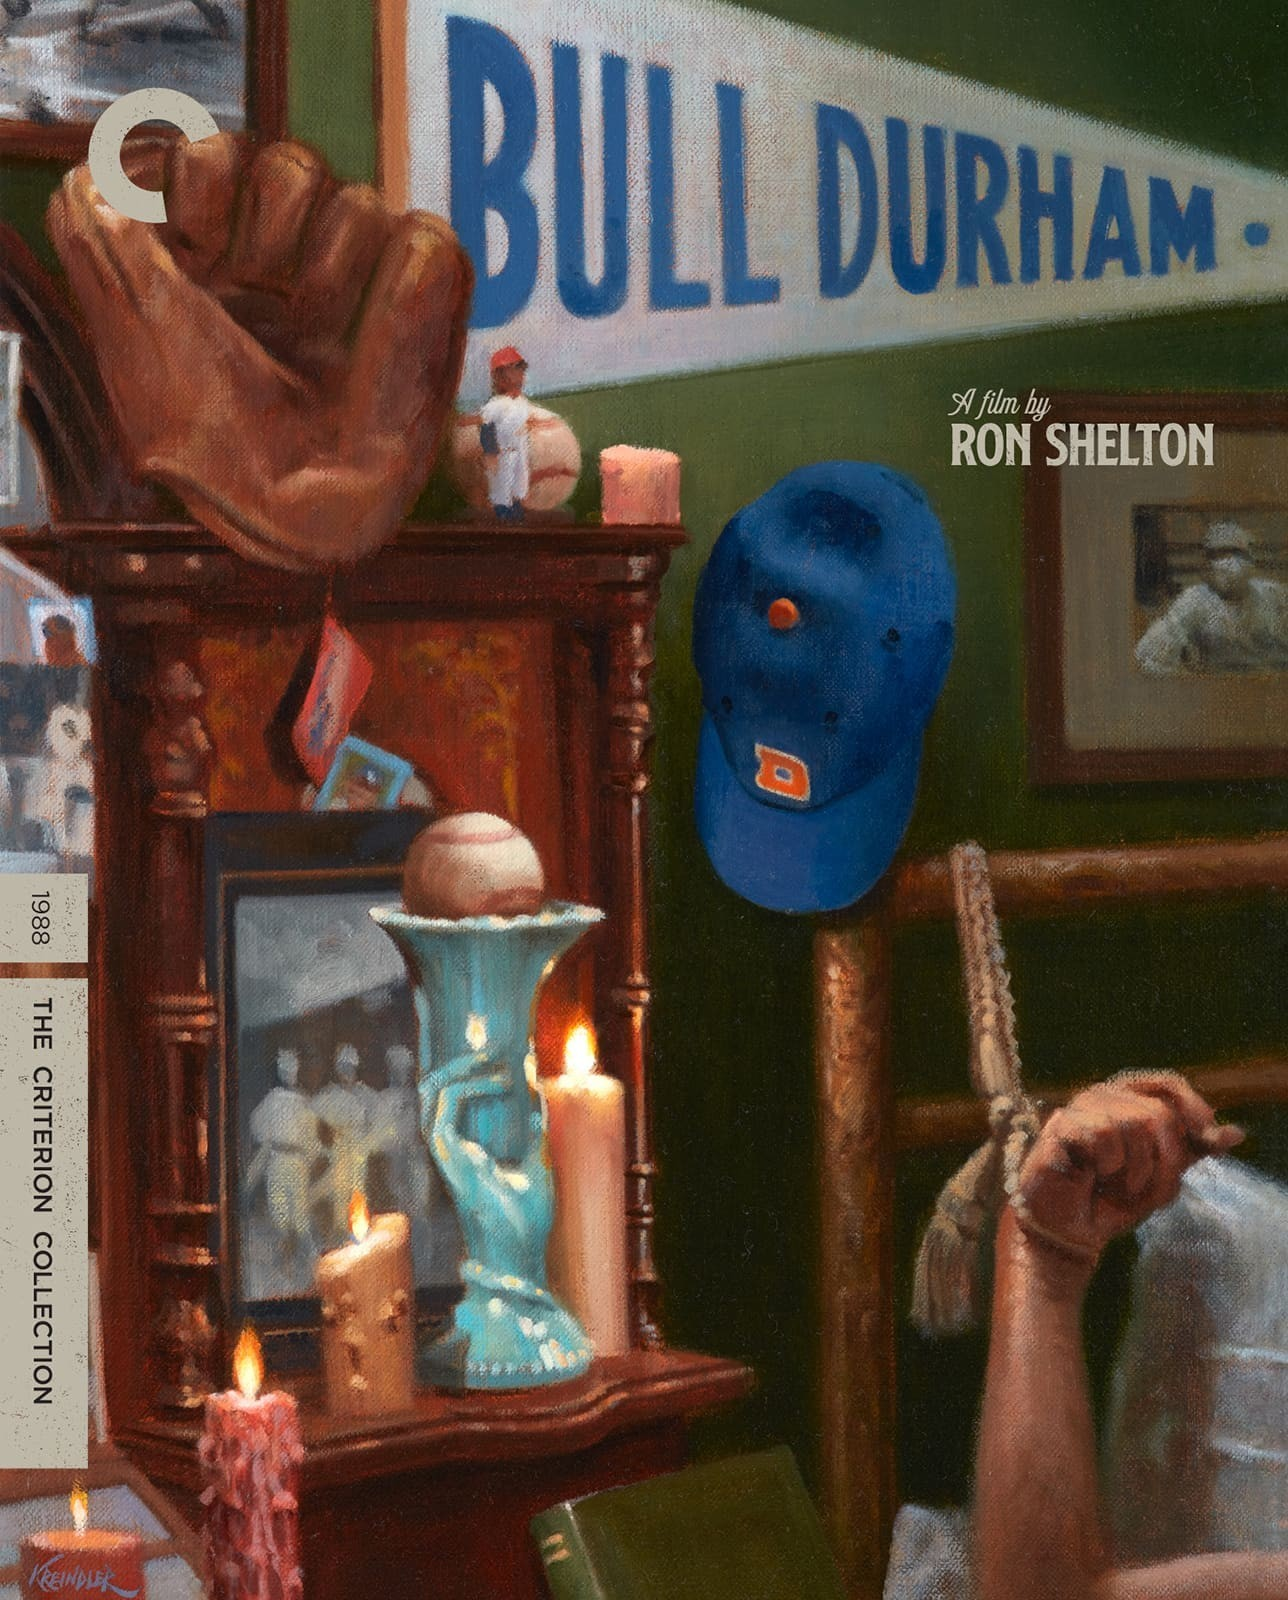 Bull Durham (The Criterion Collection)(1988) Blu-ray